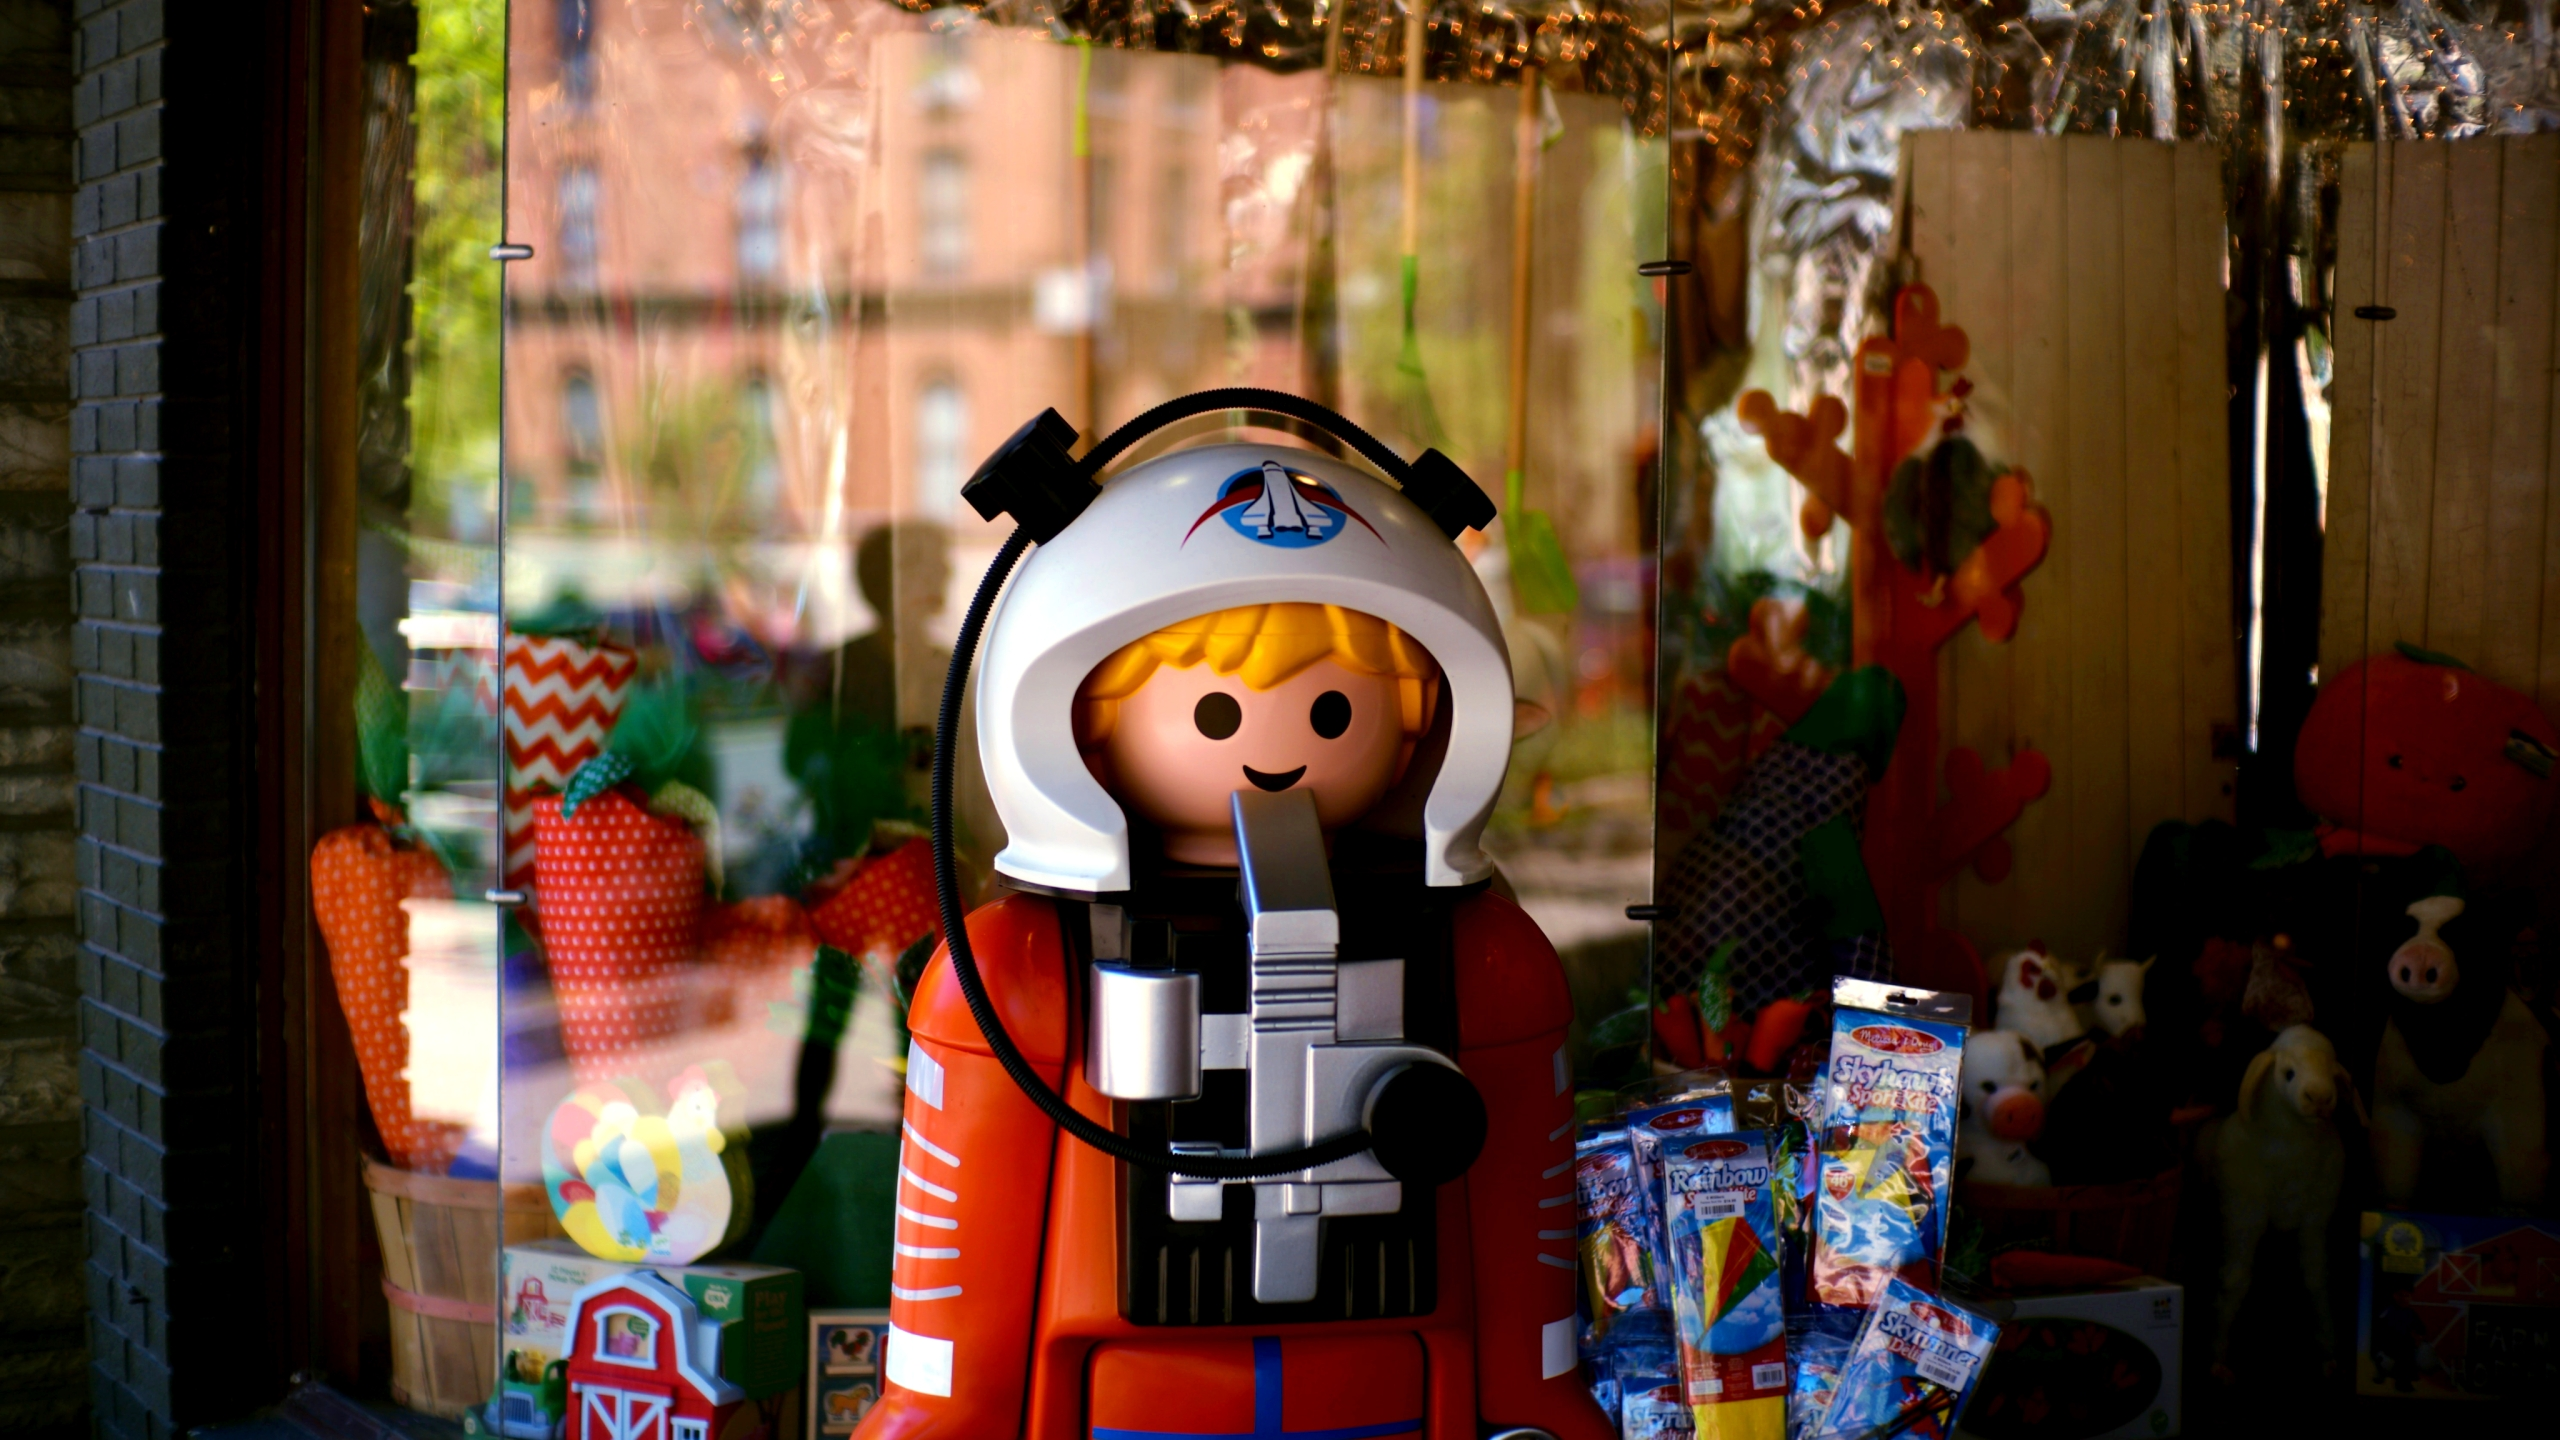 Life-size lego astronaut in Saratoga Springs